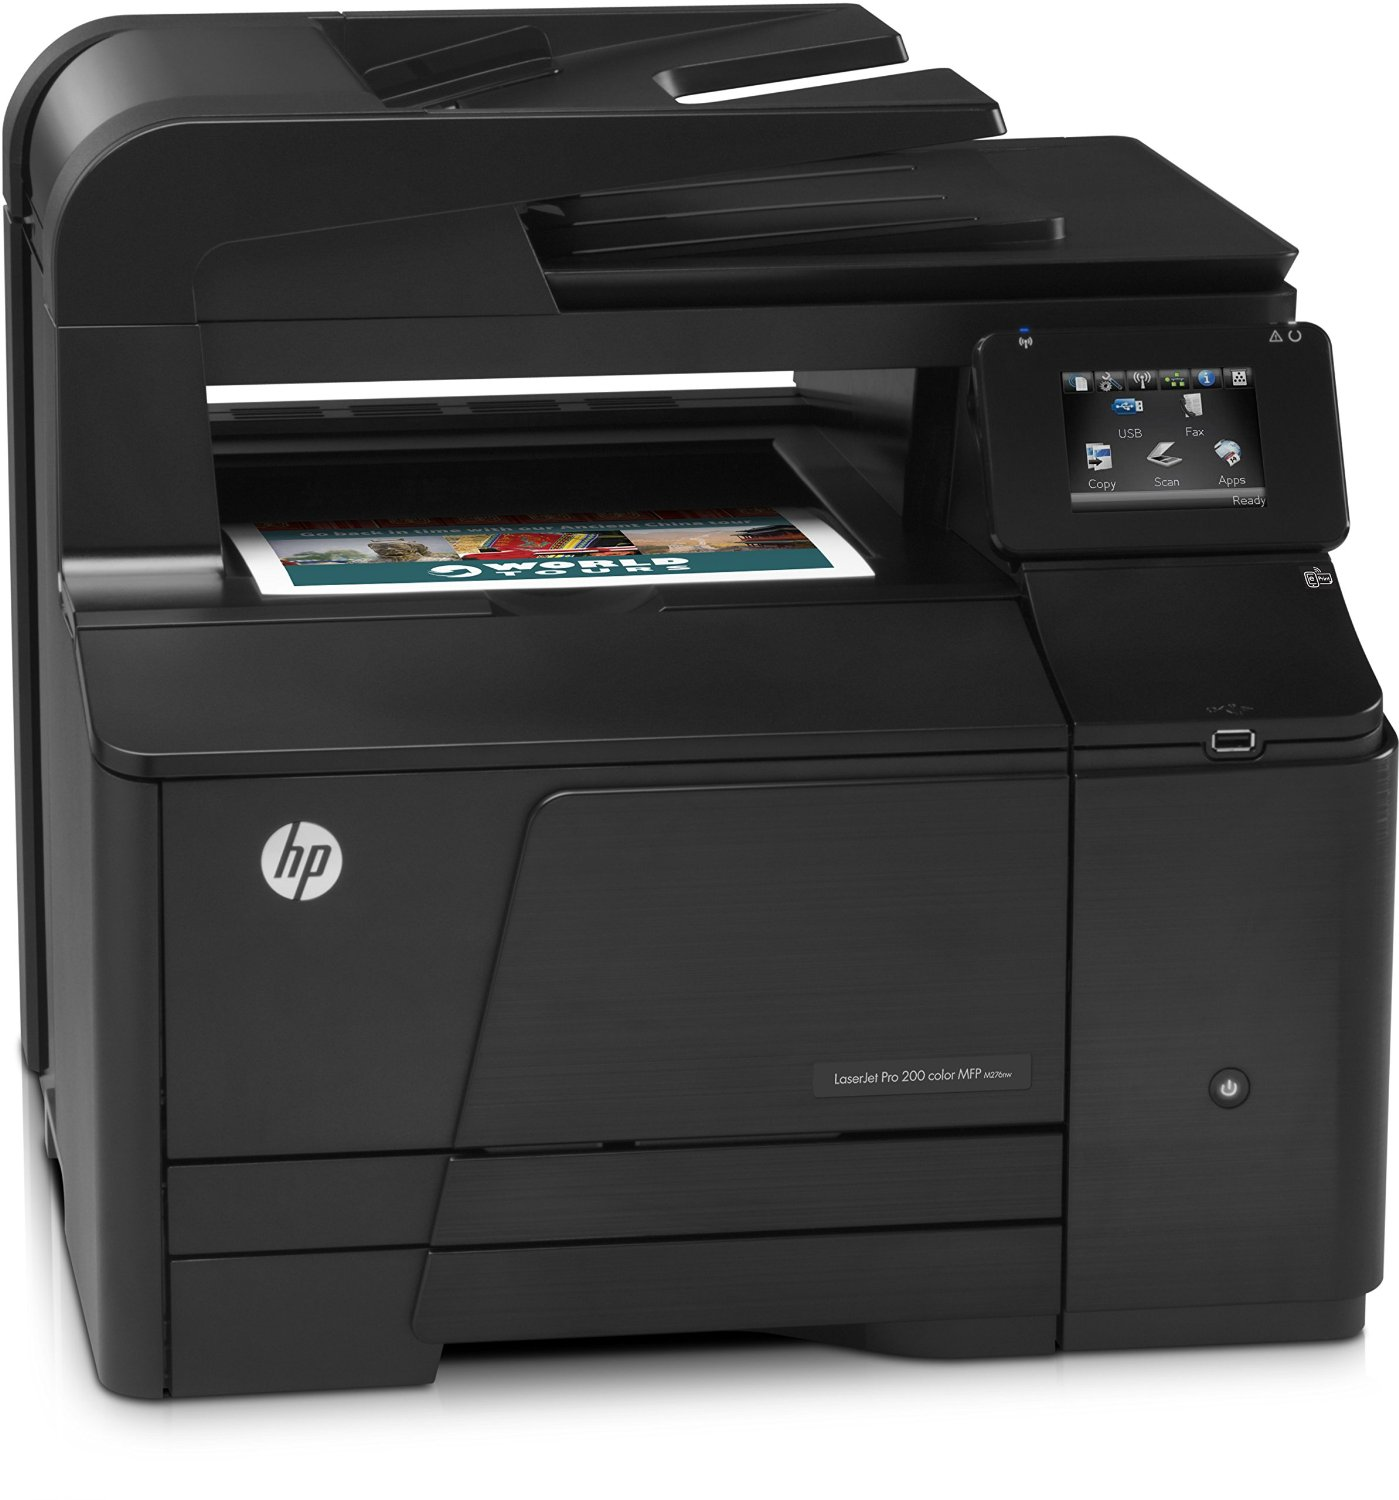 LaserJet Pro 200 Color M276nw im Test technikblog